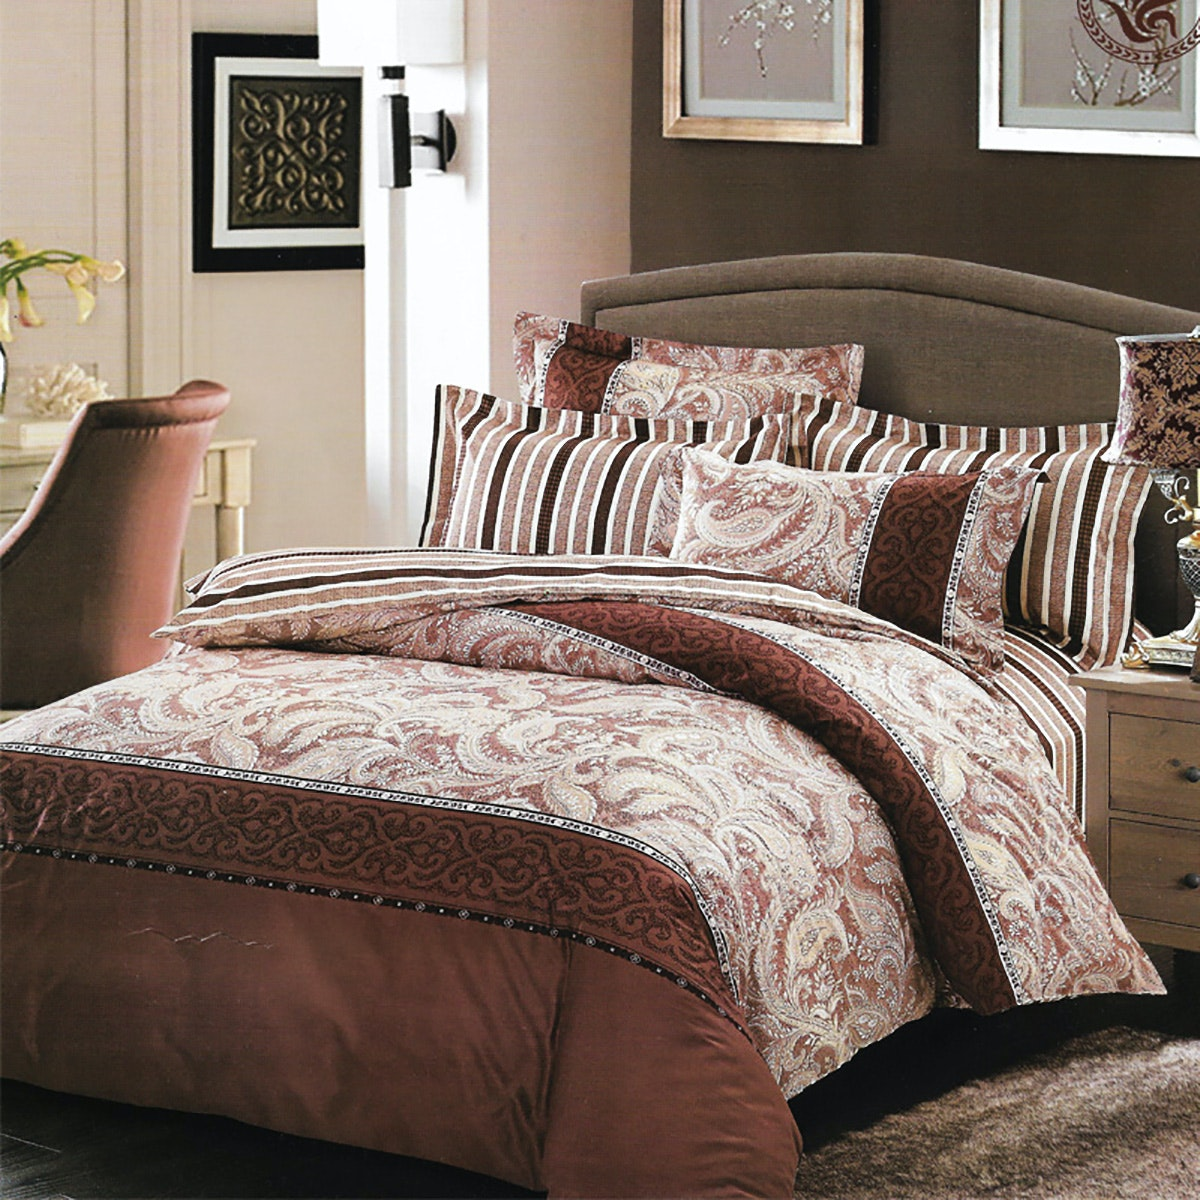 Sleep Buddy Set Sprei Dan Bed Cover Brown Classic Cotton Sateen 160x200x30